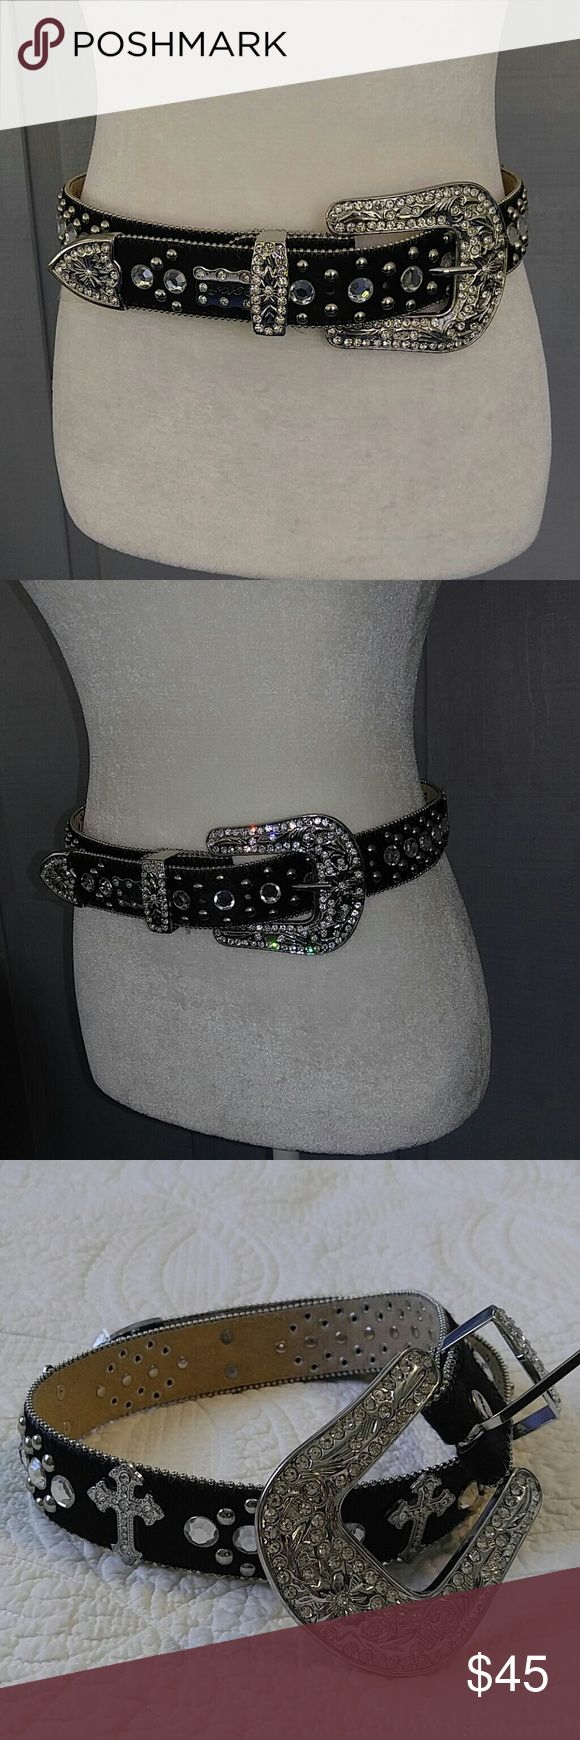 NWOT BHW WESTERN cowgirl bling leather belt Lots of sparkle rhinestones with crosses real leather BHW Accessories Belts